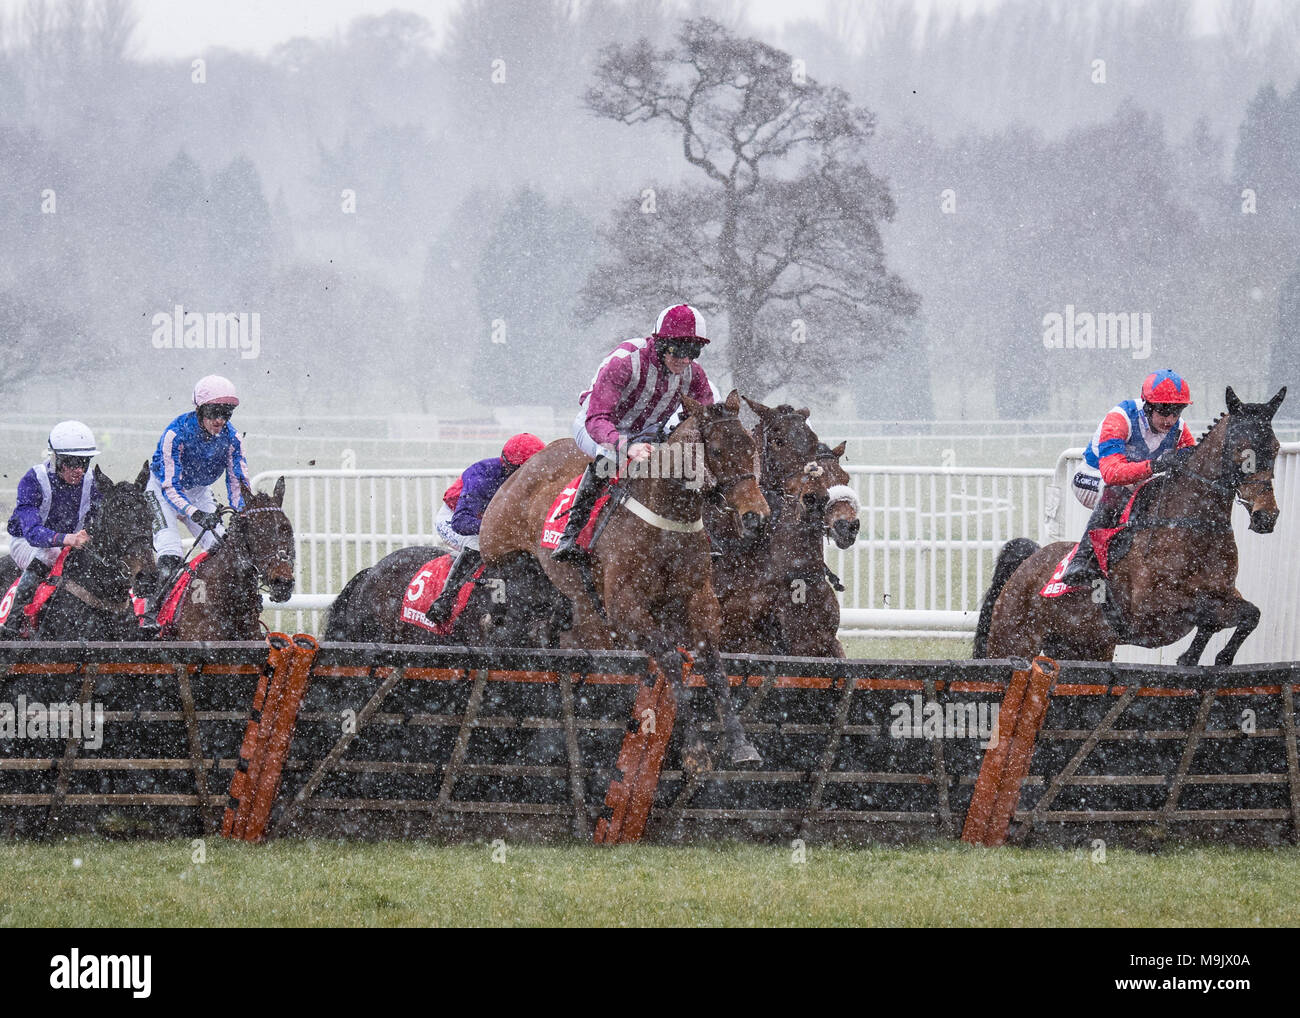 Uttoxeter Racecourse - Midlands Grand National Day 2018 Stock Photo